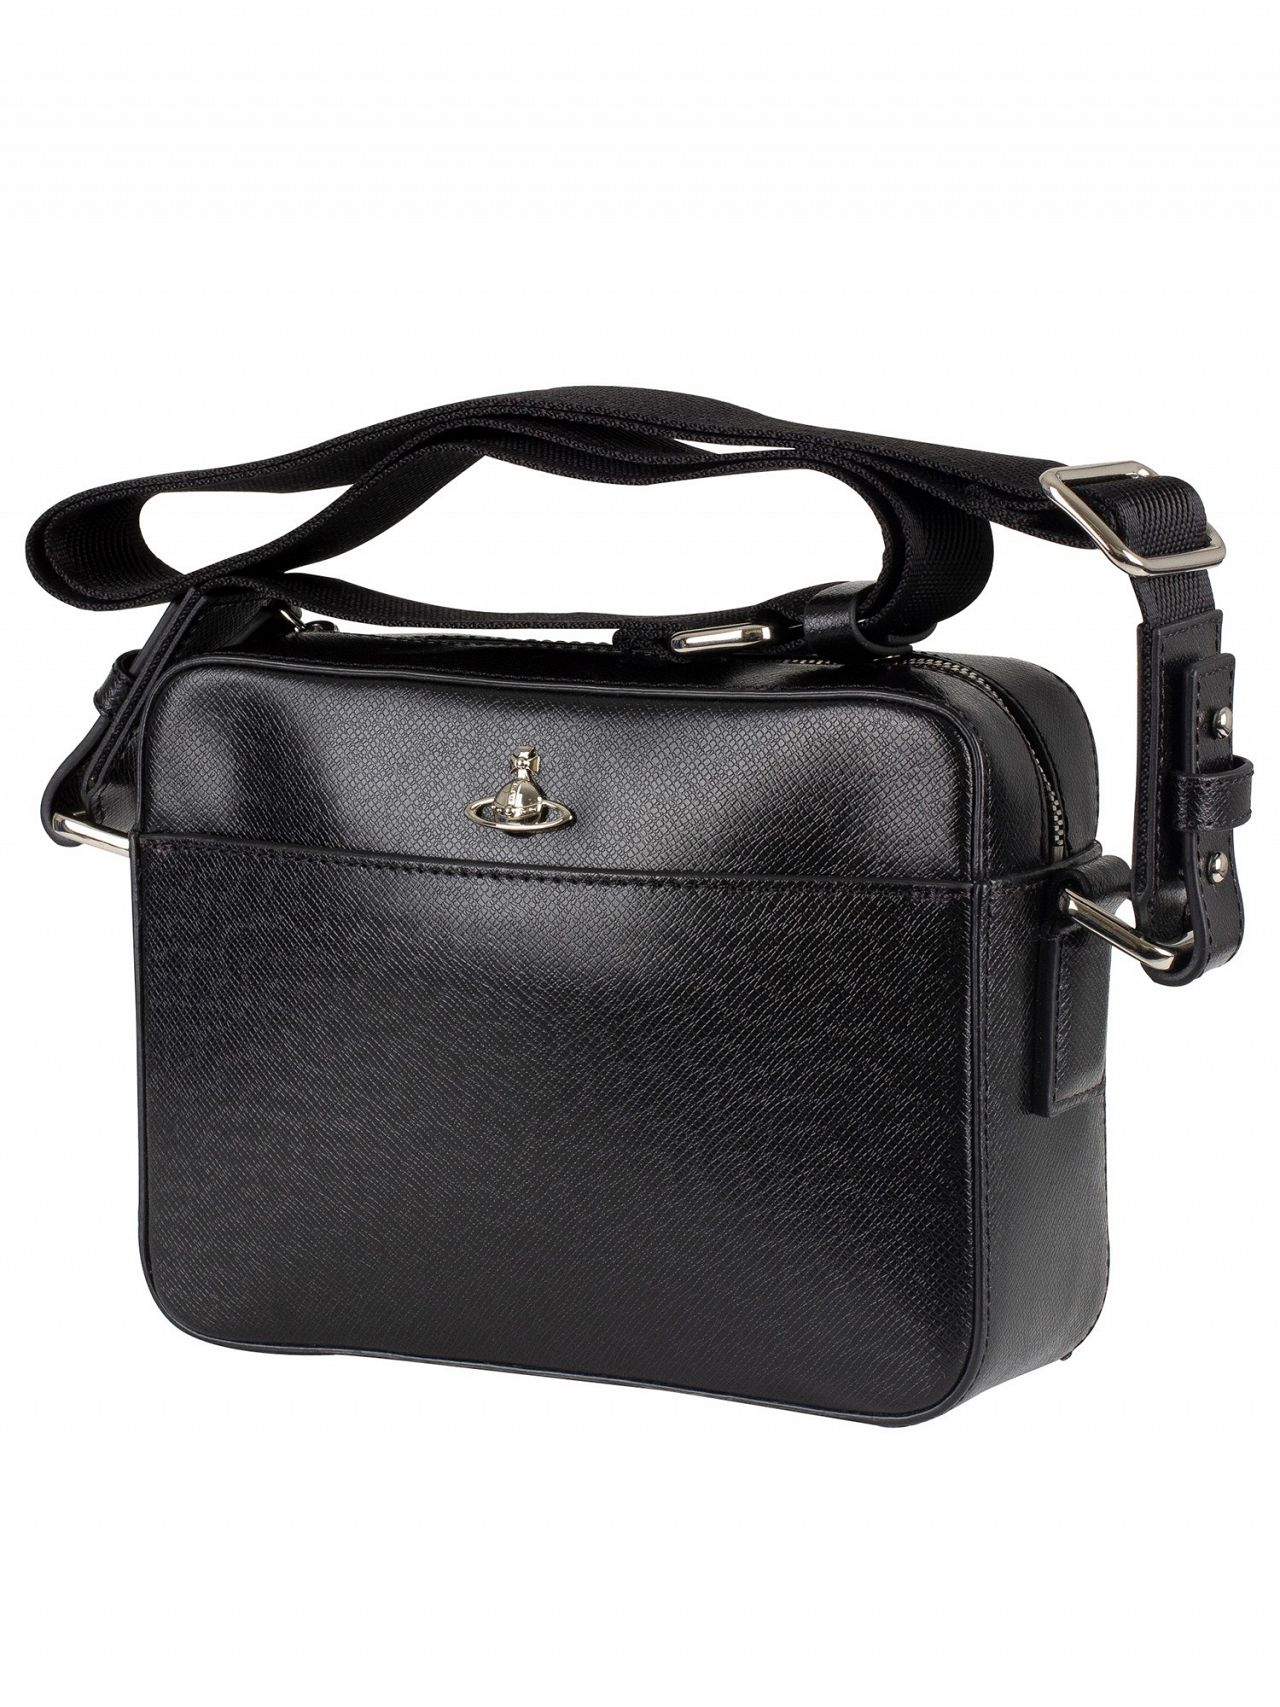 f3529c05f3 Vivienne Westwood Black Kent Camera Shoulder Bag